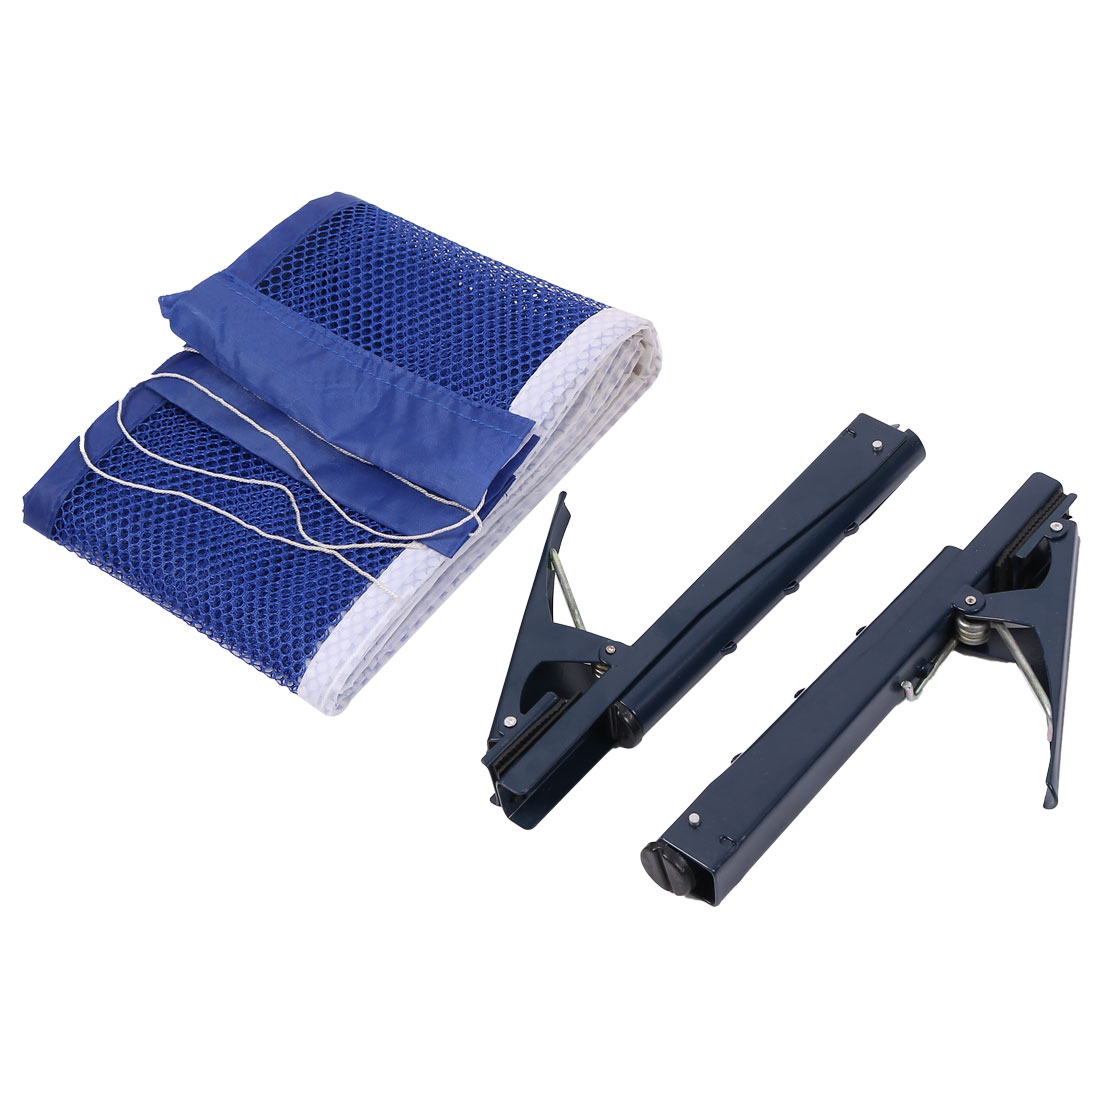 Table Tennis 1.79M Long Nylon Net w Dark Blue Metal Post Stand